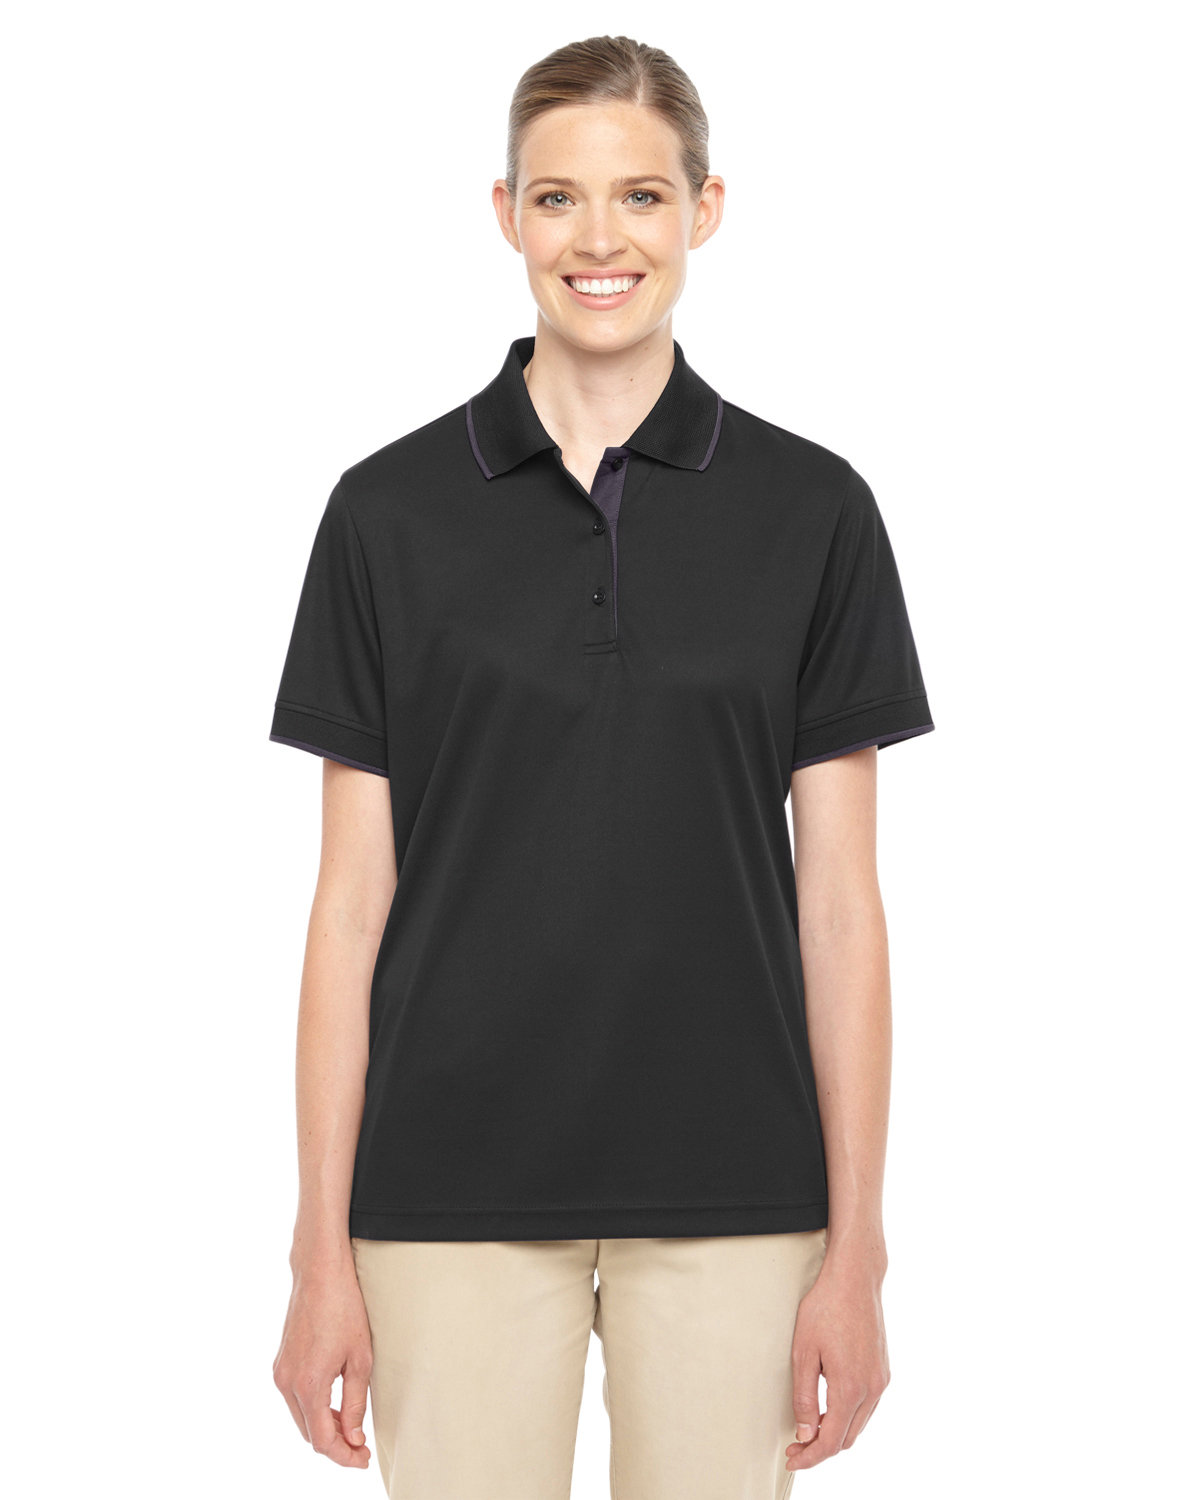 Core 365 Ladies' Motive Performance Piqué Polo with Tipped Collar BLACK/ CARBON